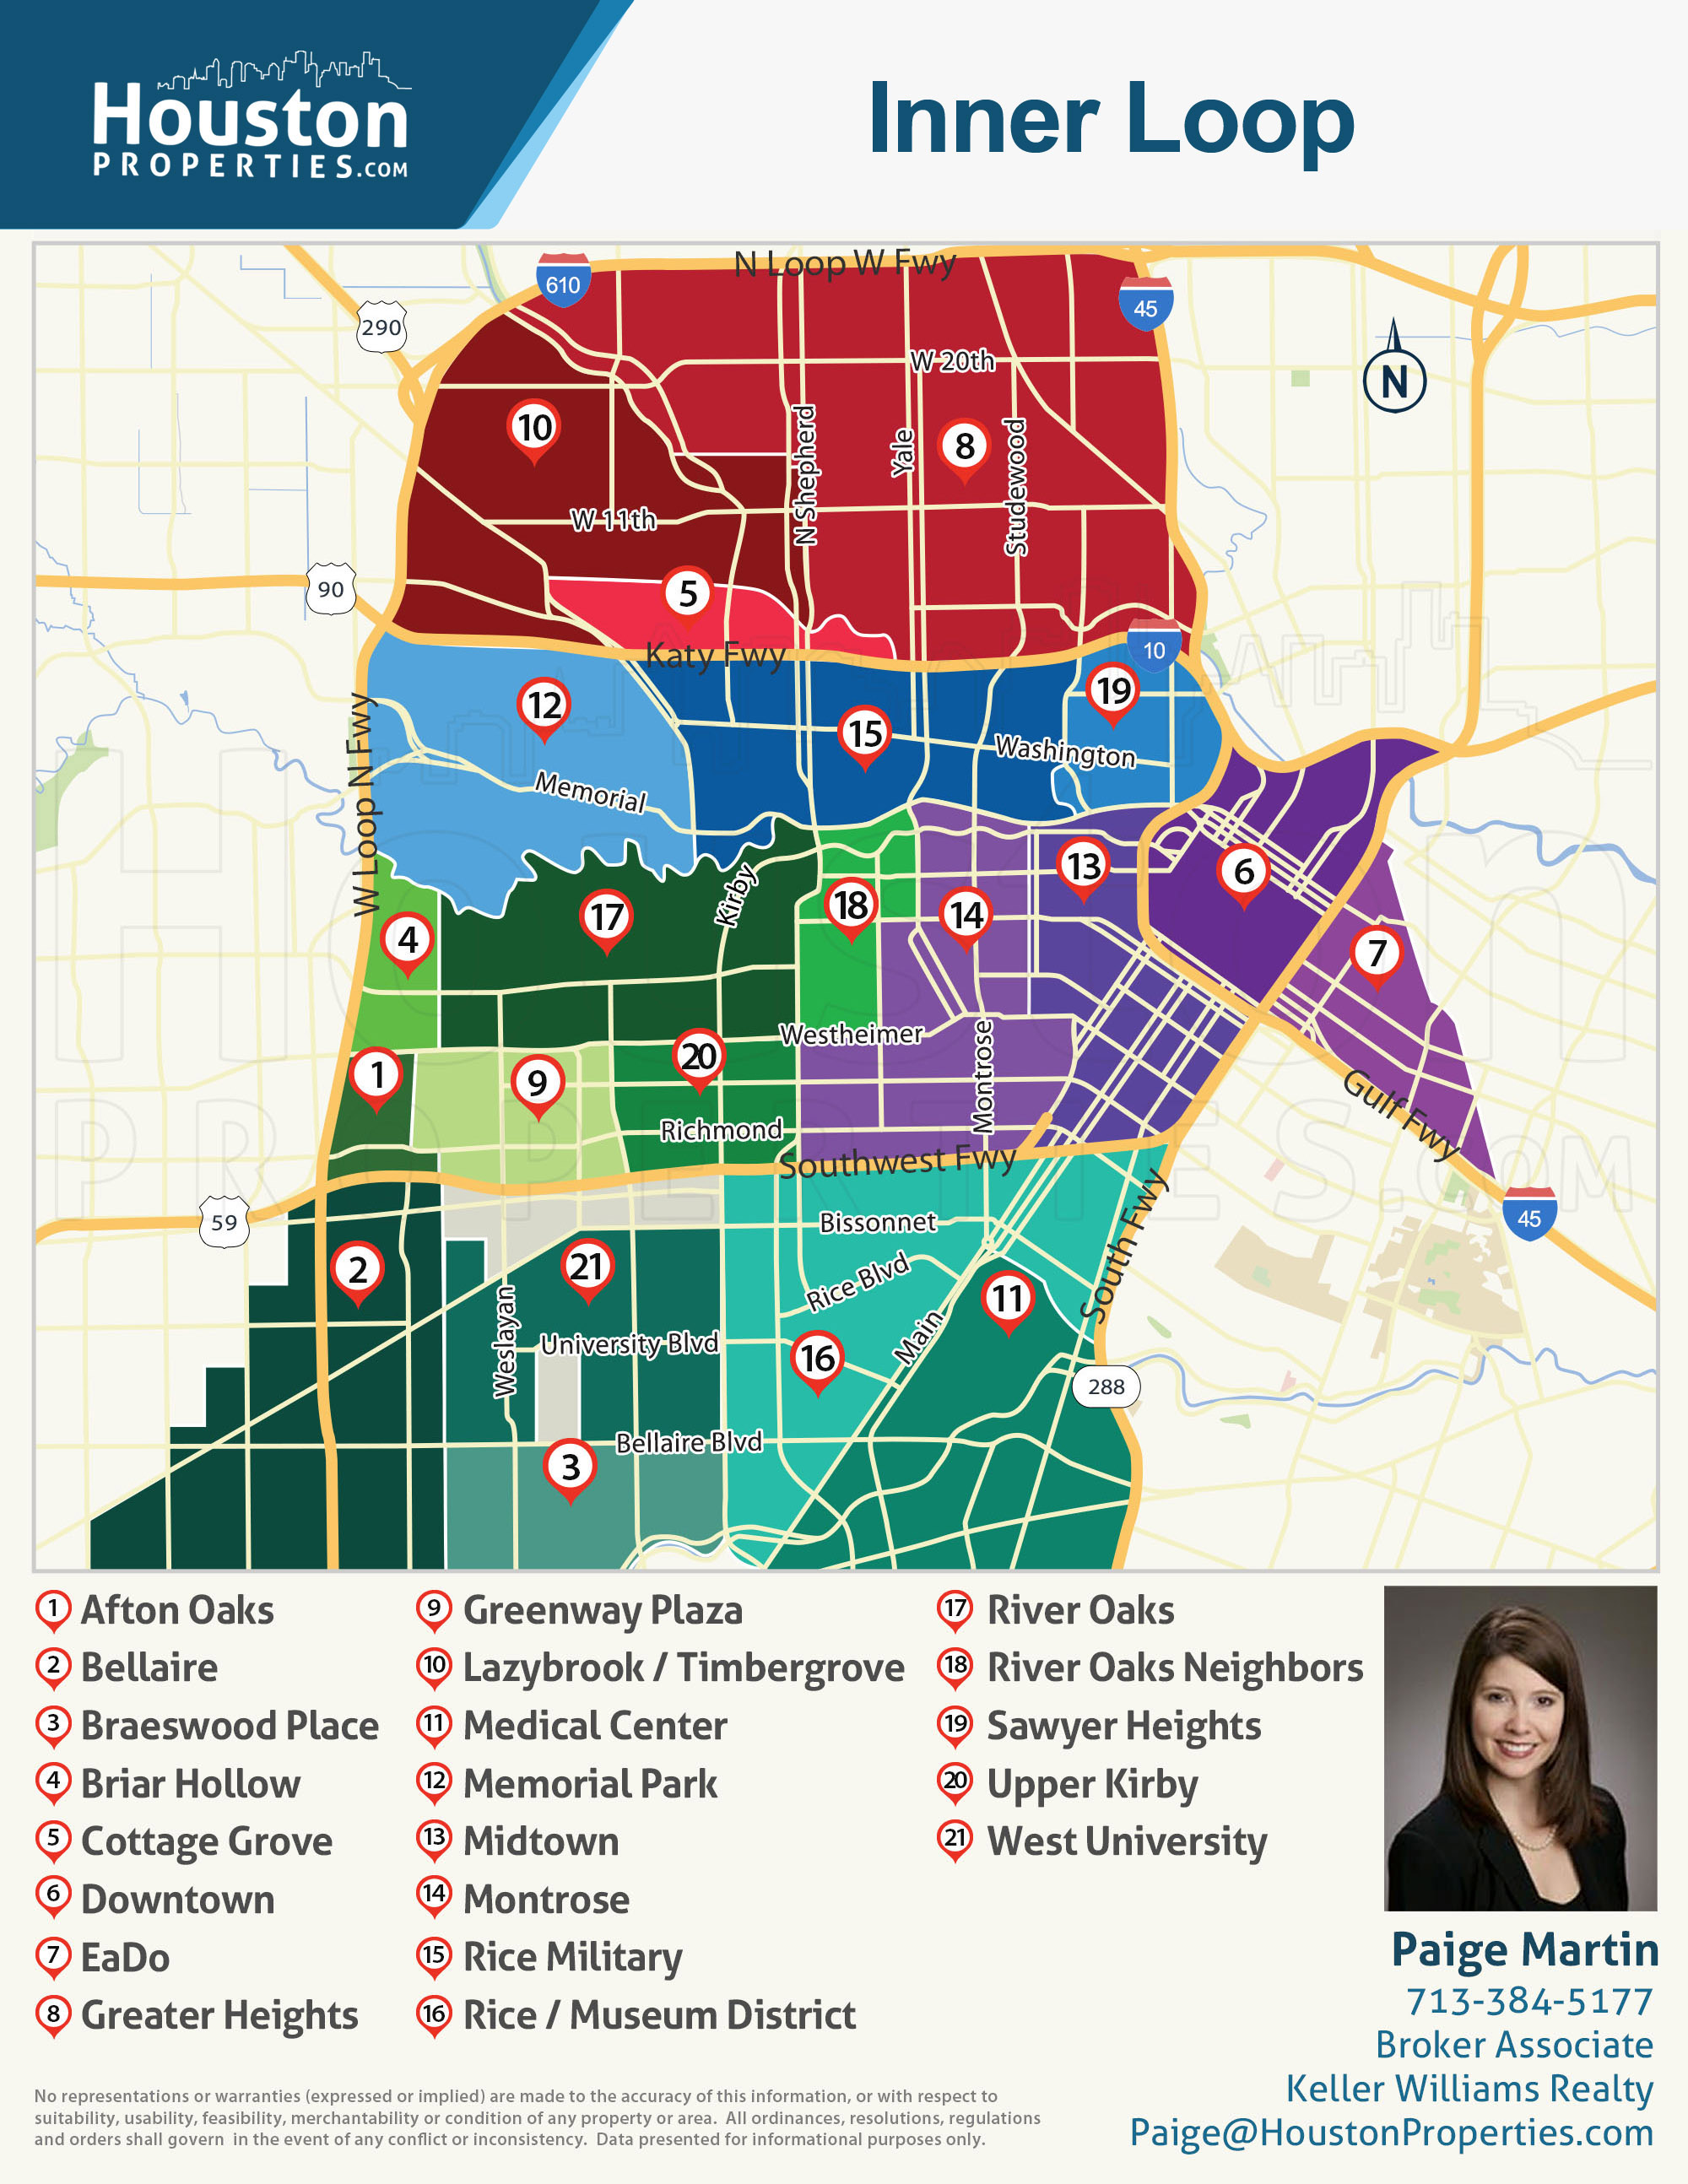 houston inner loop neighborhood map